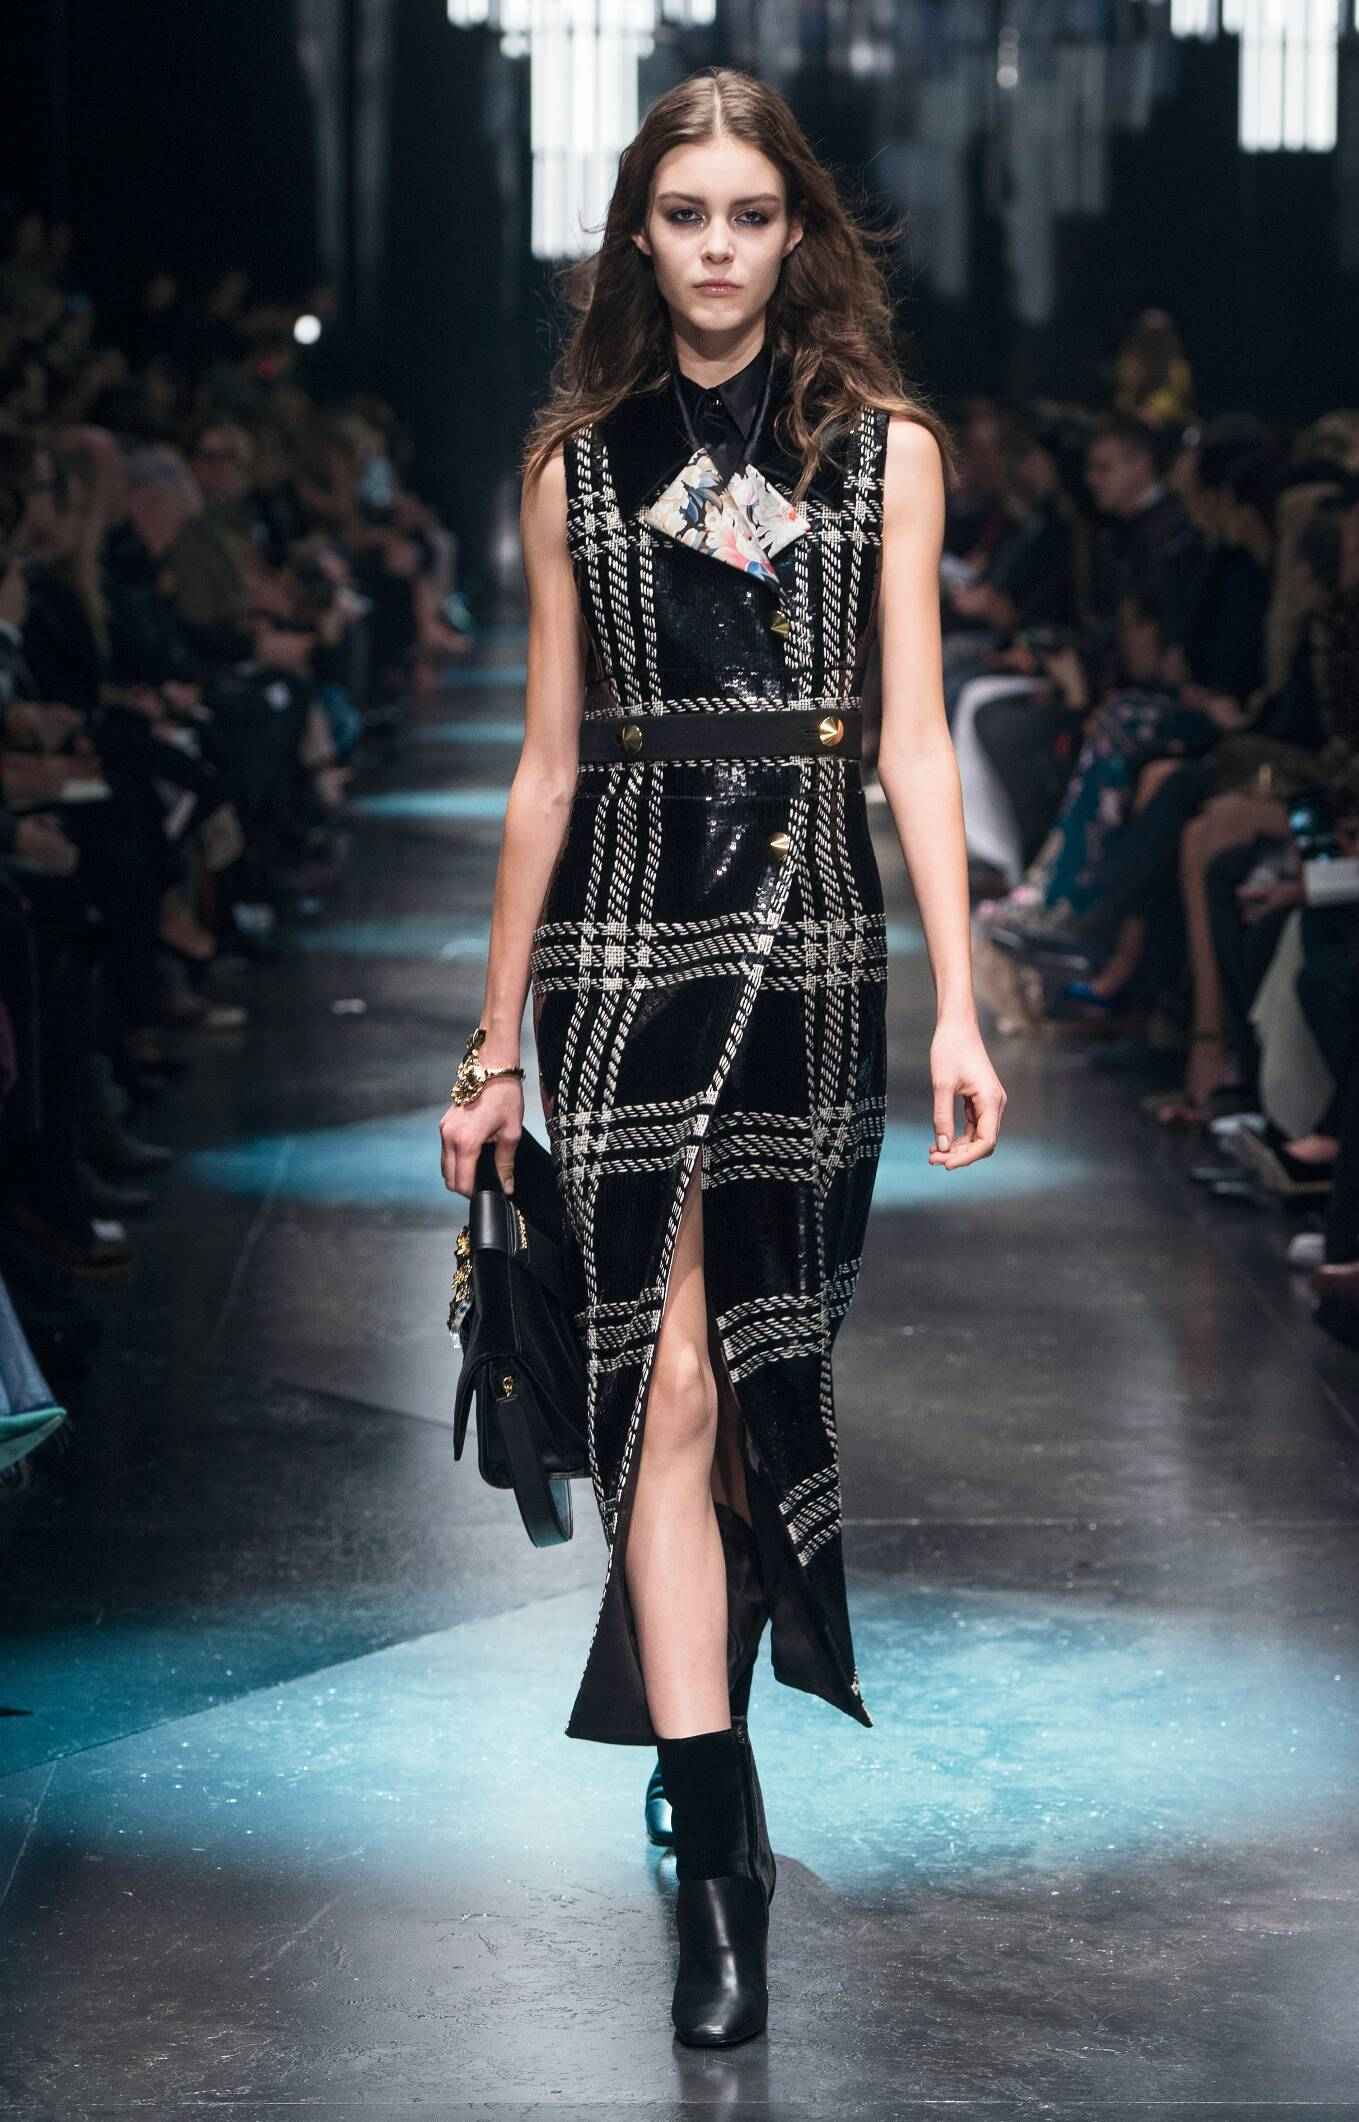 Roberto Cavalli Collection Woman Milan Fashion Week